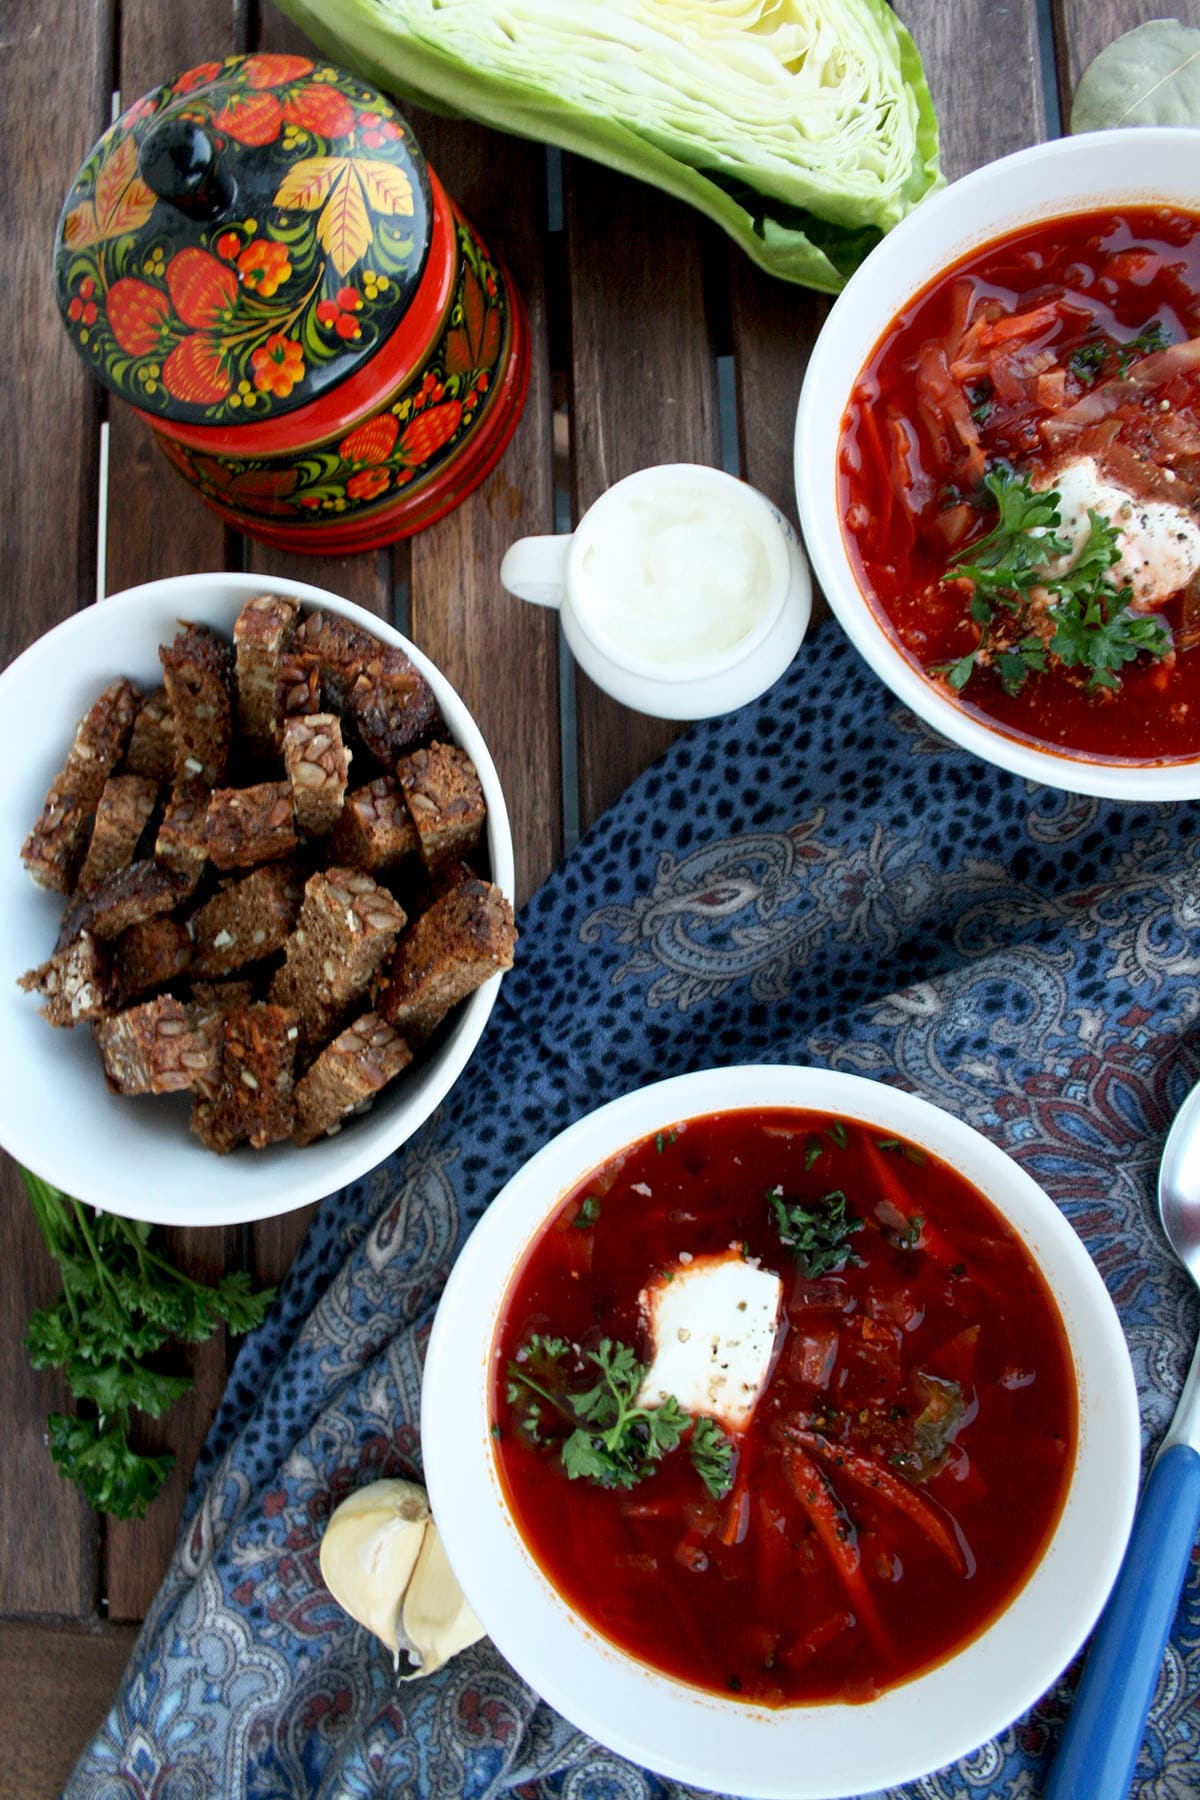 Easy and Healthy Russian-Ukrainian Borsch A thick vegetable soup, with red beet as the main ingredient, wholesome, flavorful, healthy and perfect for nasty autumn weather.